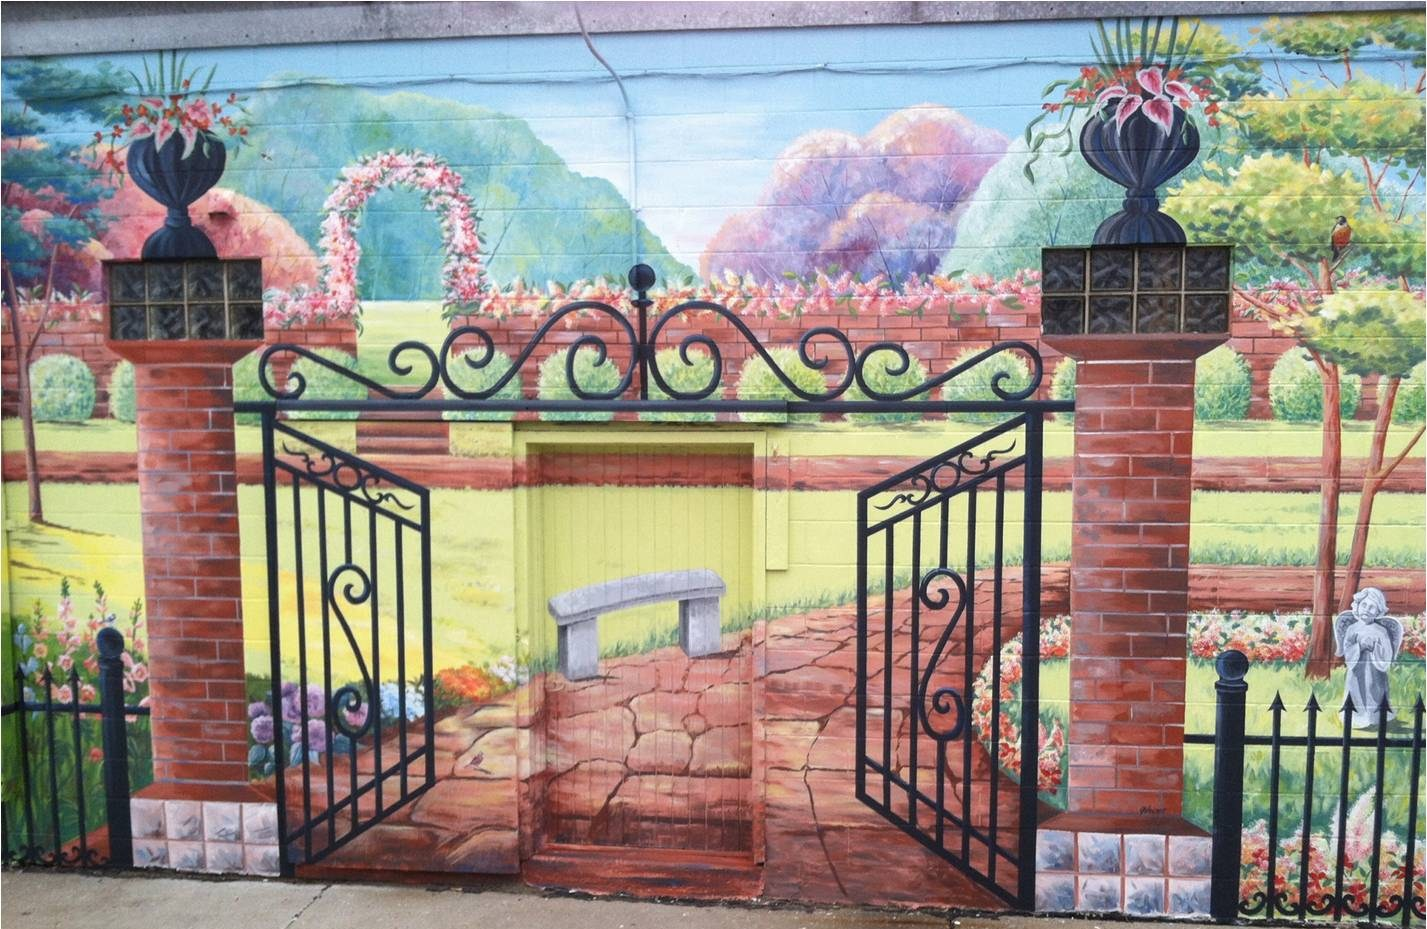 Mural of a gated entryway leading to a garden with trees, flowers, a bench, and small statues